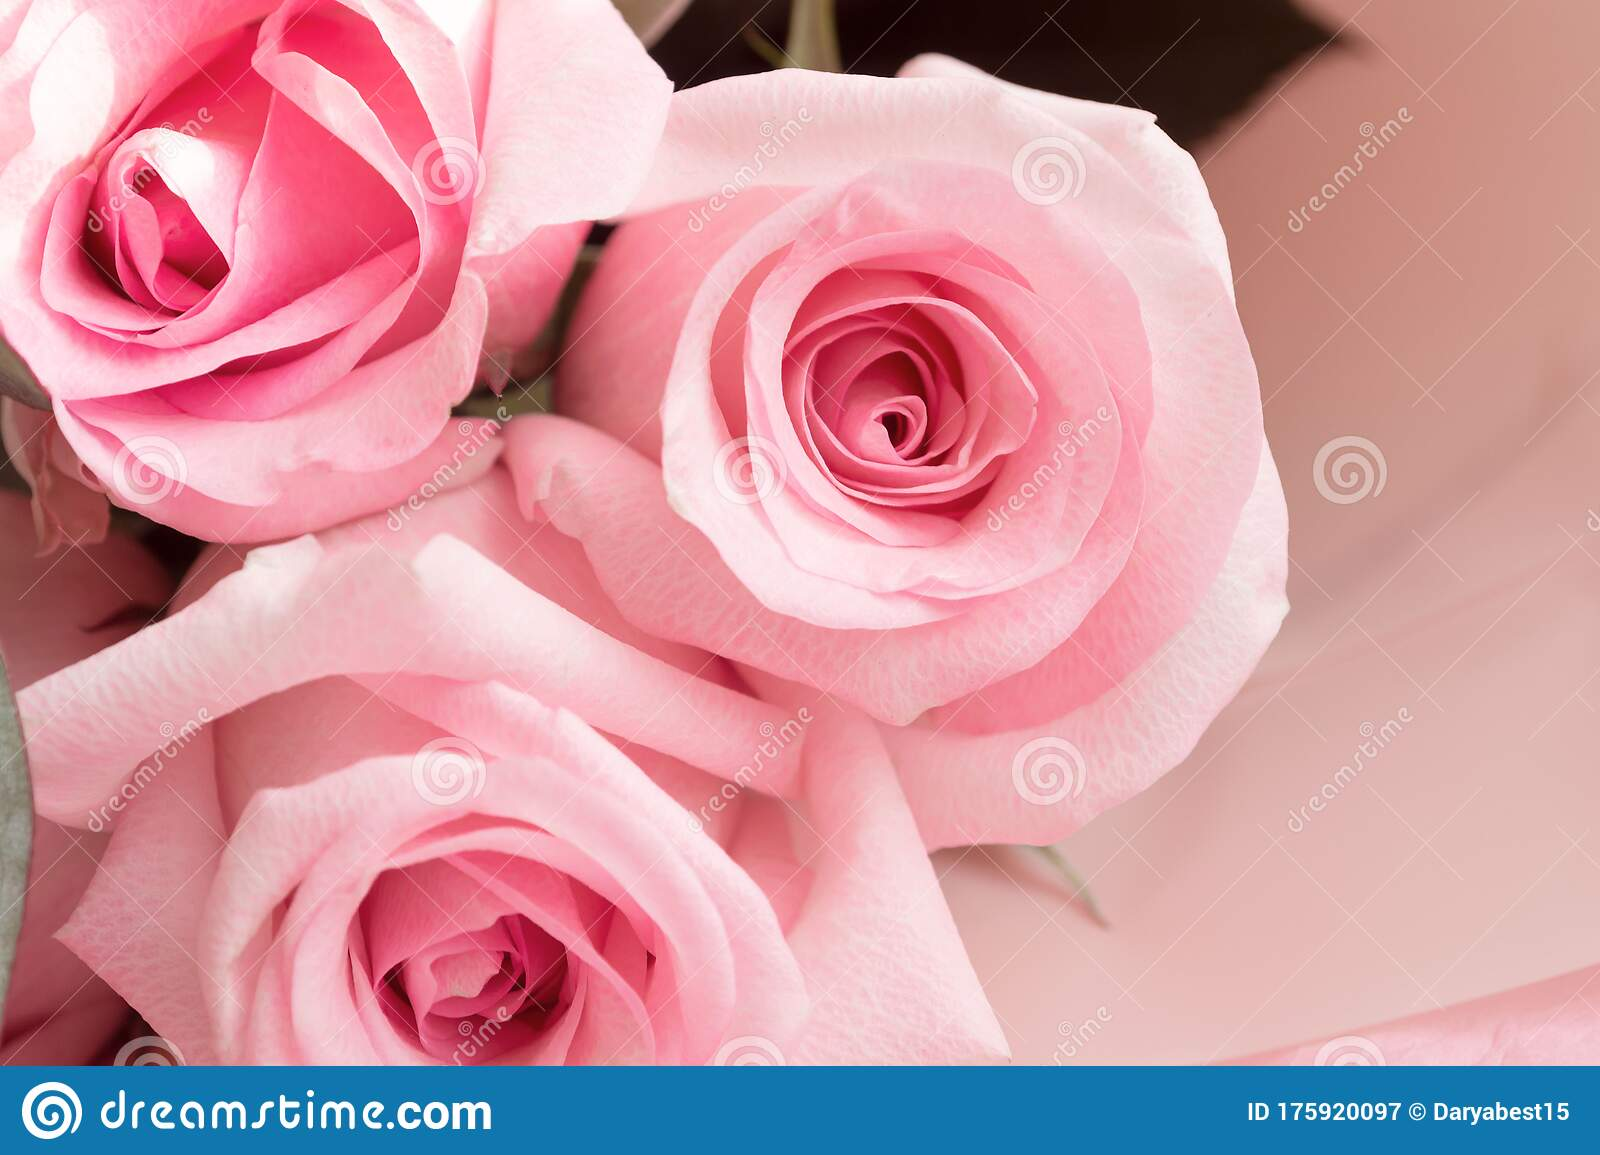 Macro View Of Dusty Pink Rose Flowers In Aesthetic Bouquet Stock Image Image Of Pink Aesthetic 175920097